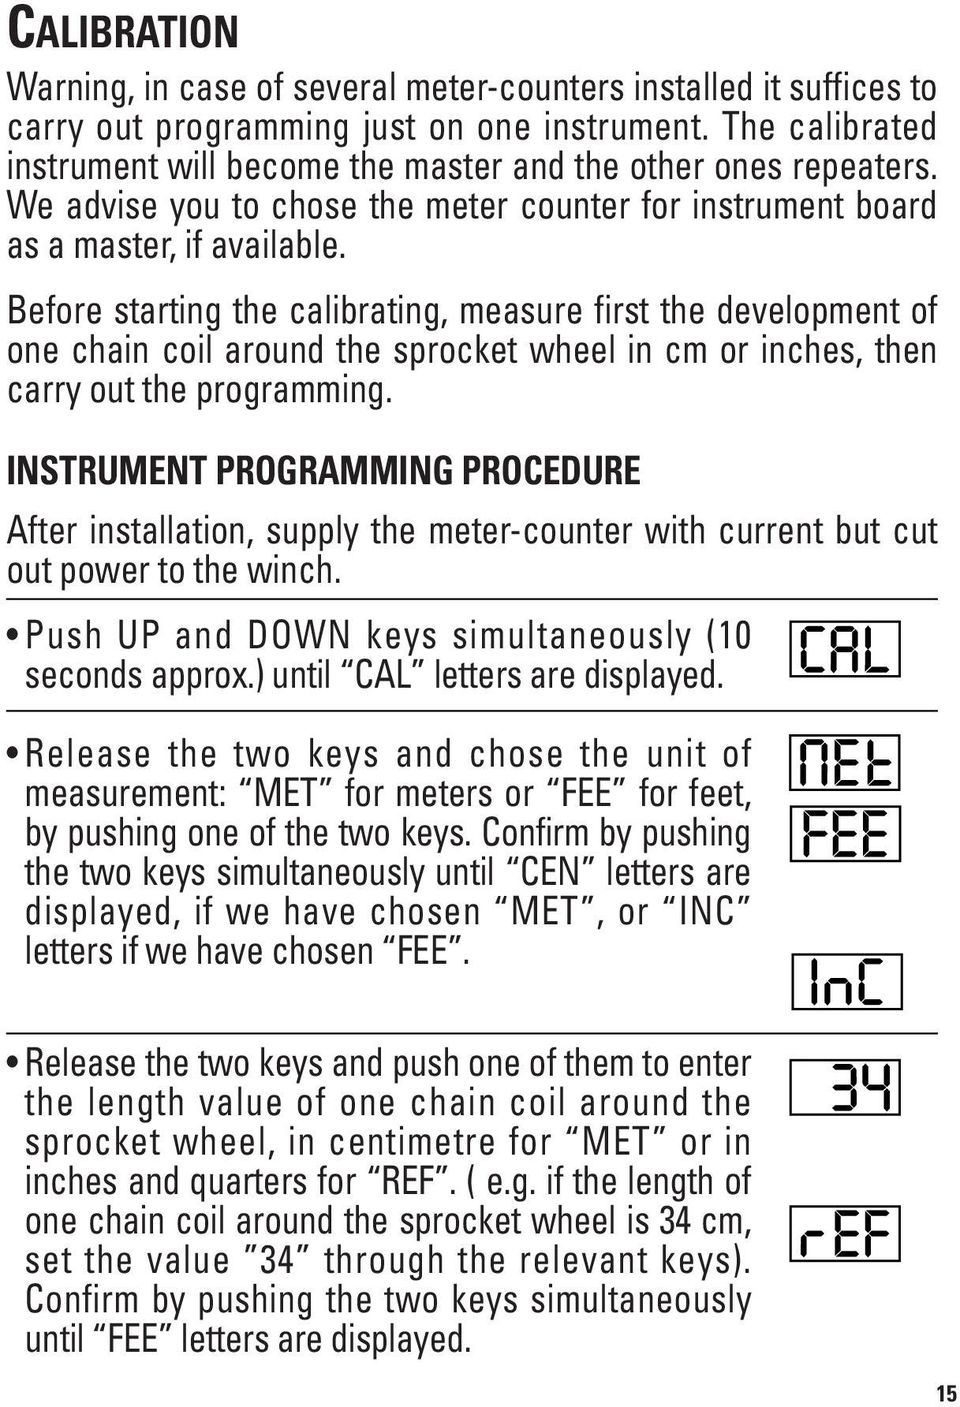 Before starting the calibrating, measure first the development of one chain coil around the sprocket wheel in cm or inches, then carry out the programming.